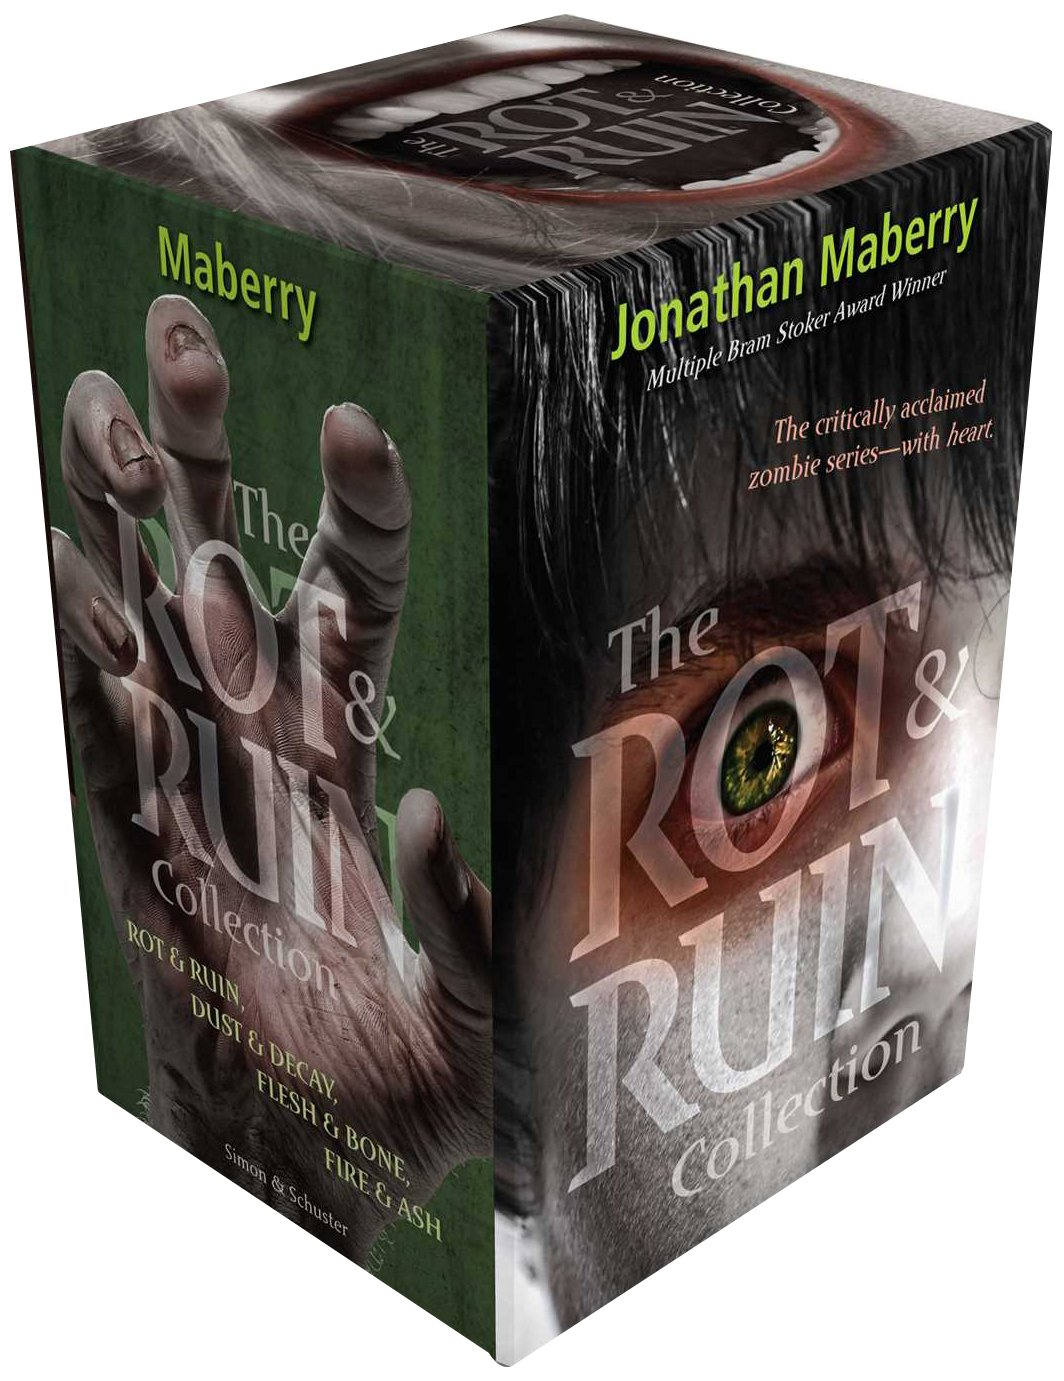 The Rot & Ruin Collection: Rot & Ruin; Dust & Decay; Flesh & Bone; Fire & Ash ebook